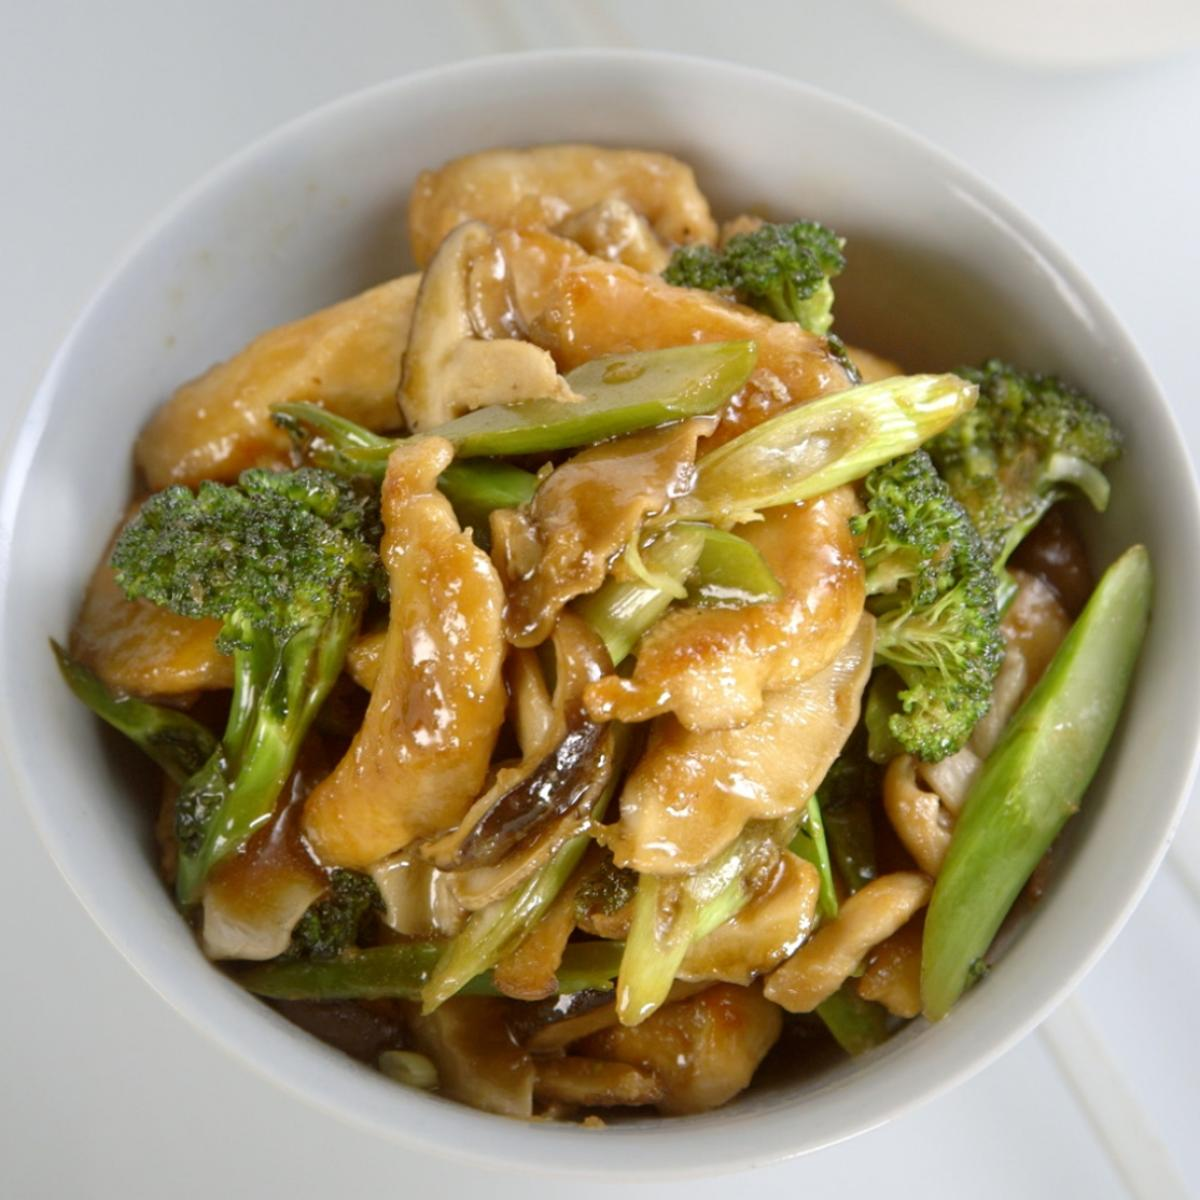 A picture of Delia's Chinese Stir-fried Chicken with Shiitake Mushrooms and Purple Sprouting Broccoli recipe